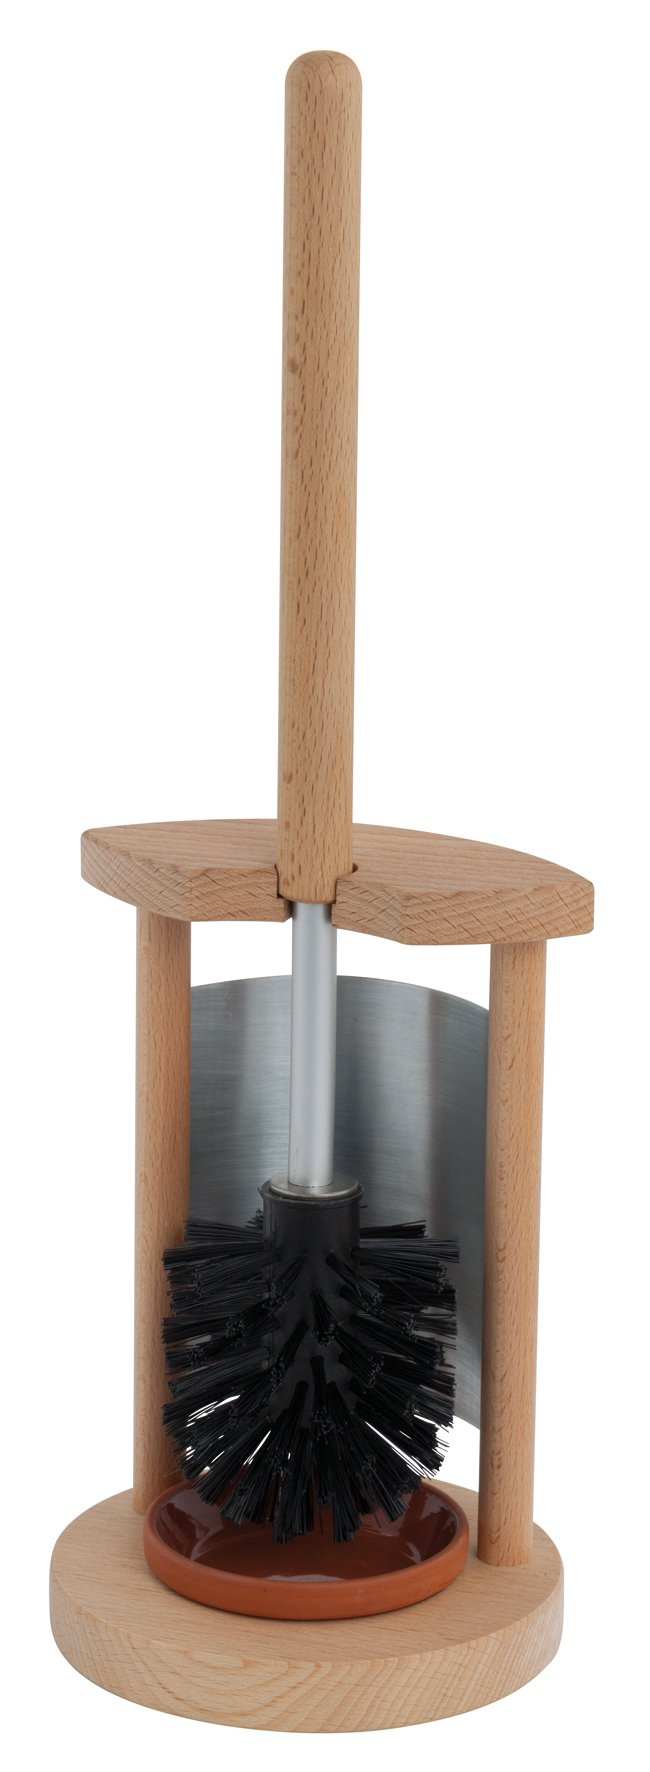 REDECKER Nylon Toilet Brush Stand Made with Oiled Beechwood, 16-7/8-Inches